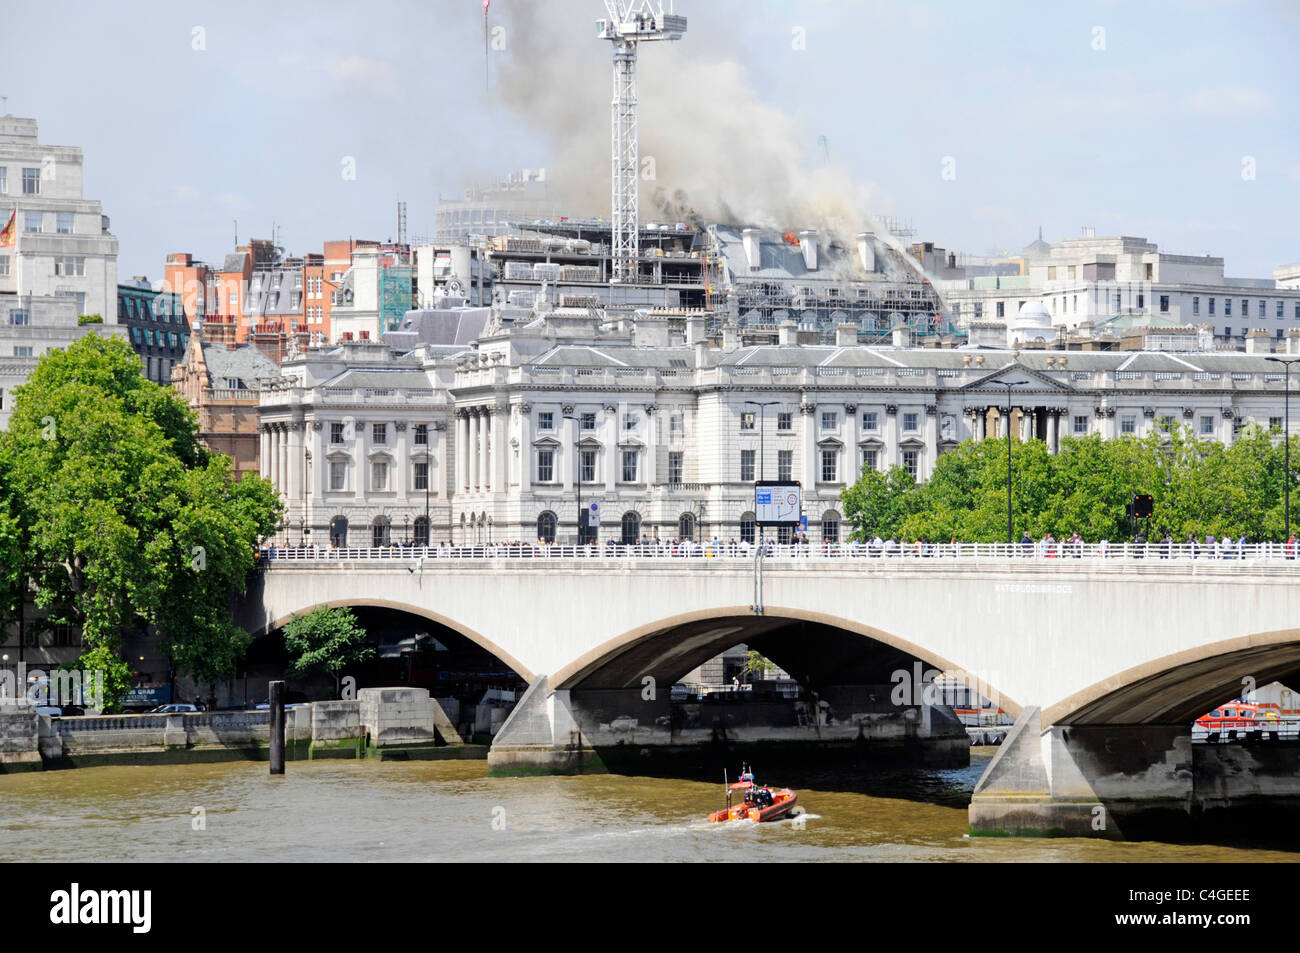 Marconi House Roof On Fire At Construction Site With